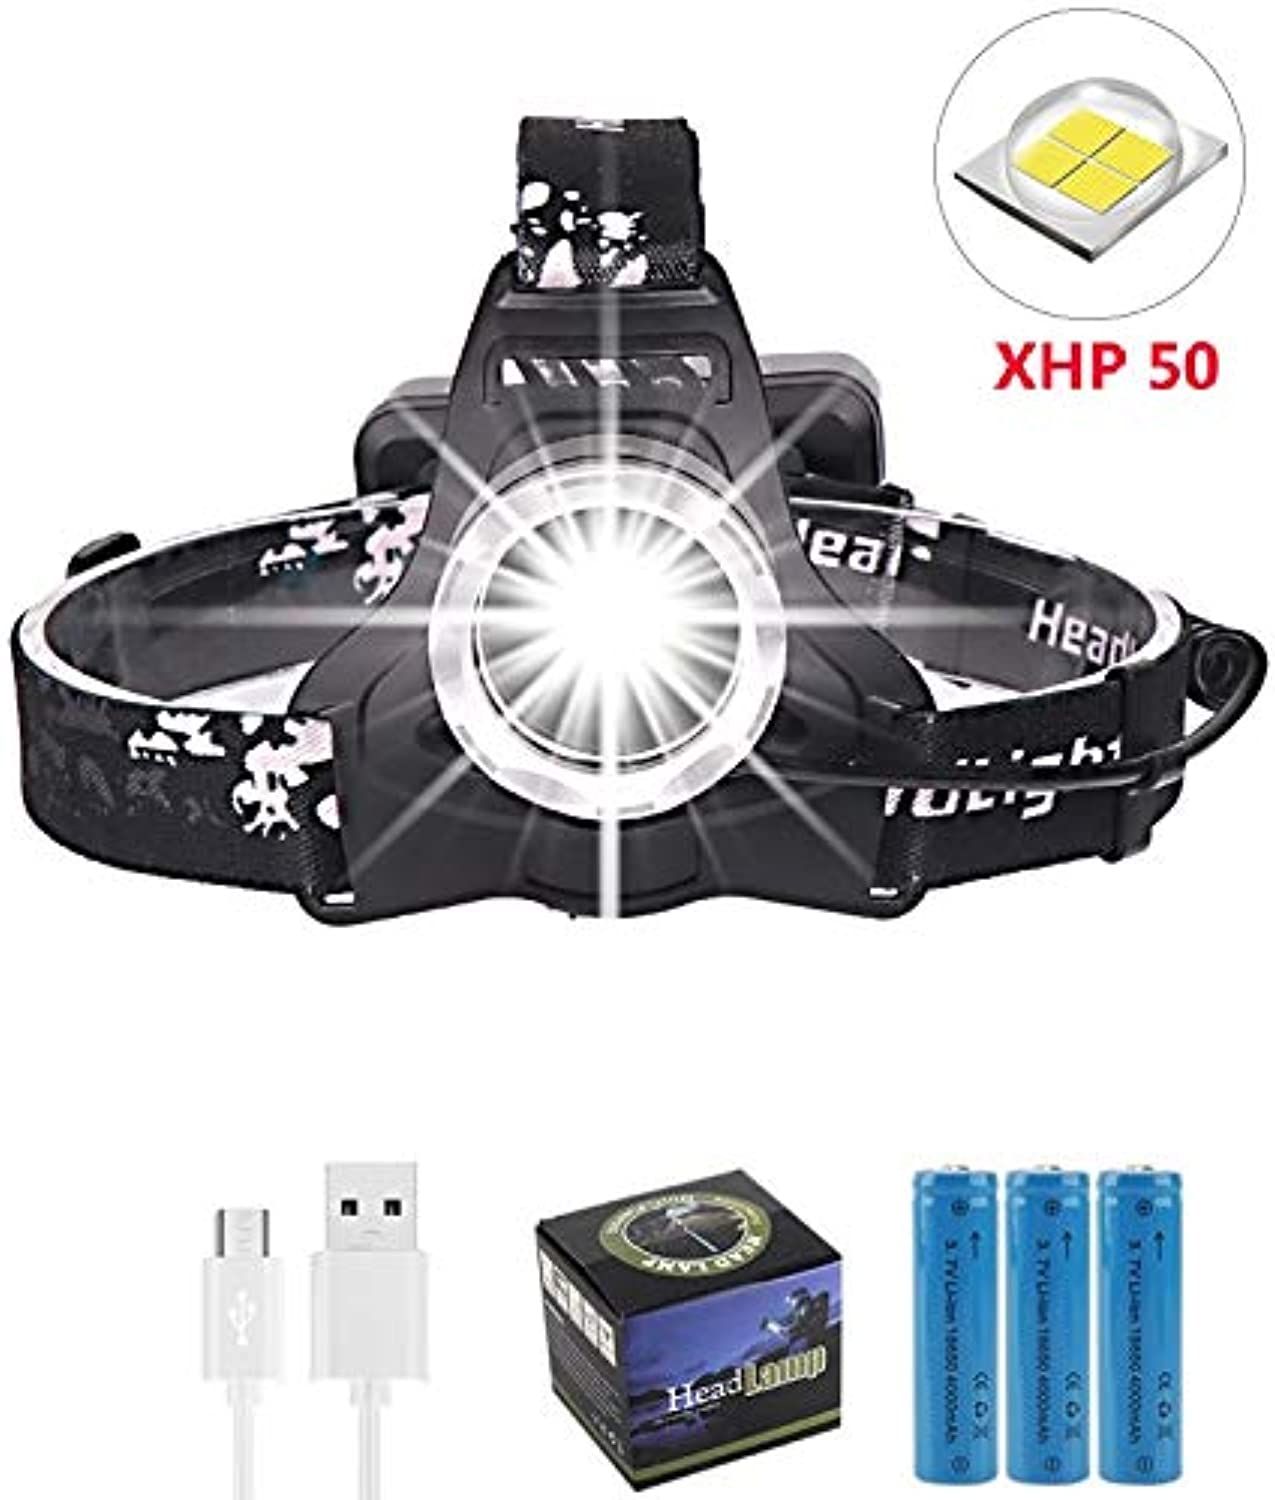 (2019 Newest ) Super Bright XPH50 LED Headlamp Rechargeable Head Flashlight 3 Modes Zoomable Waterproof LED Headlight with Battery and USB Charger,Support Power Output